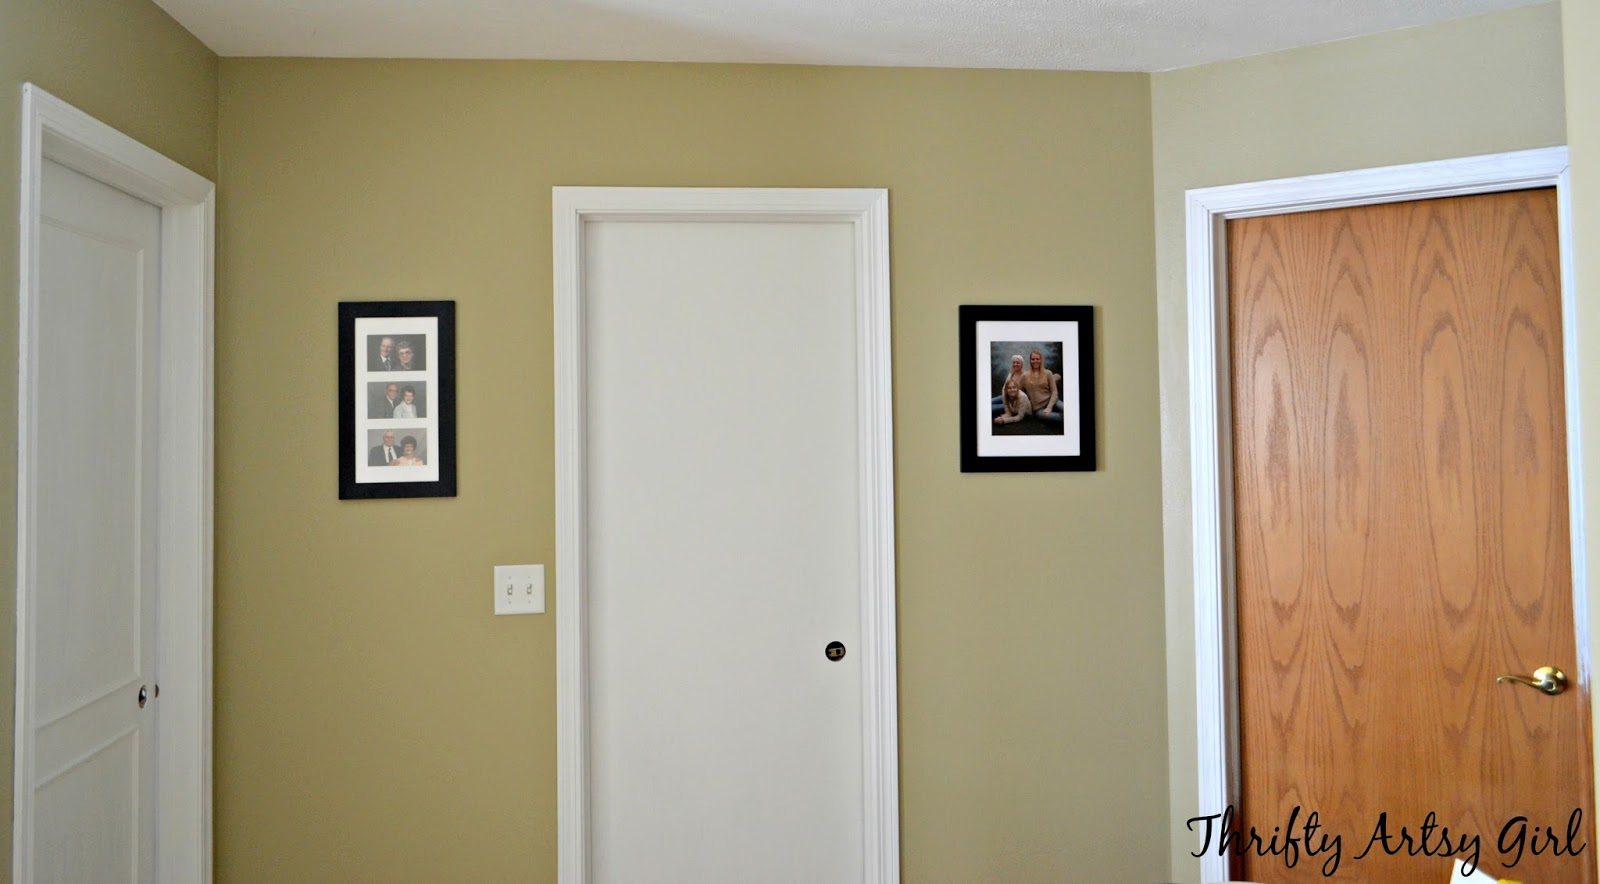 Thrifty Artsy Girl: From Hollow Core Bore to a Beautiful ...